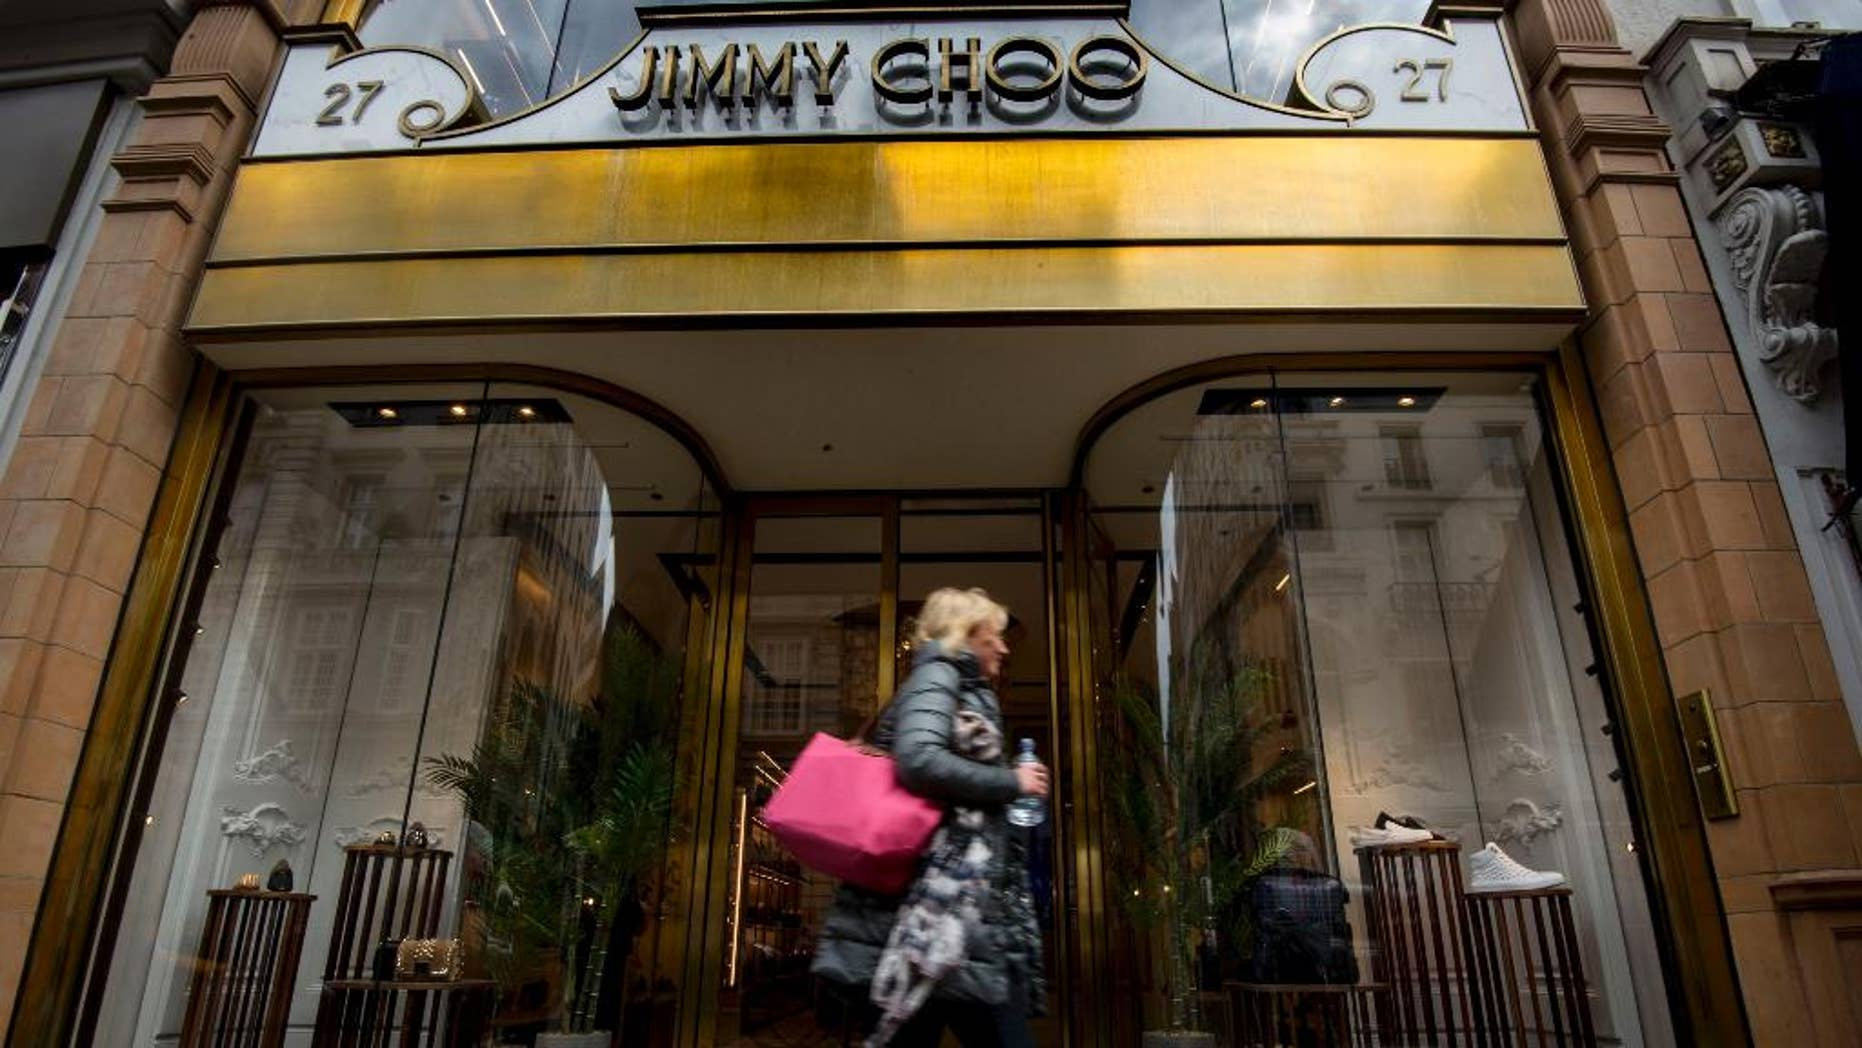 """A general view of the Jimmy Choo shop on New Bond Street, London, Monday, April 24, 2017. Shares in Jimmy Choo have leapt 11 percent after its board put the luxury shoe brand up for sale. The gains bring the market value of the firm that began in east London to over 700 million pounds ($896 million). The firm, which counts Jennifer Lopez, the Duchess of Cambridge and Beyonce among its fans, is being sold to """"maximize value for its shareholders."""" (Lauren Hurley/PA via AP)"""